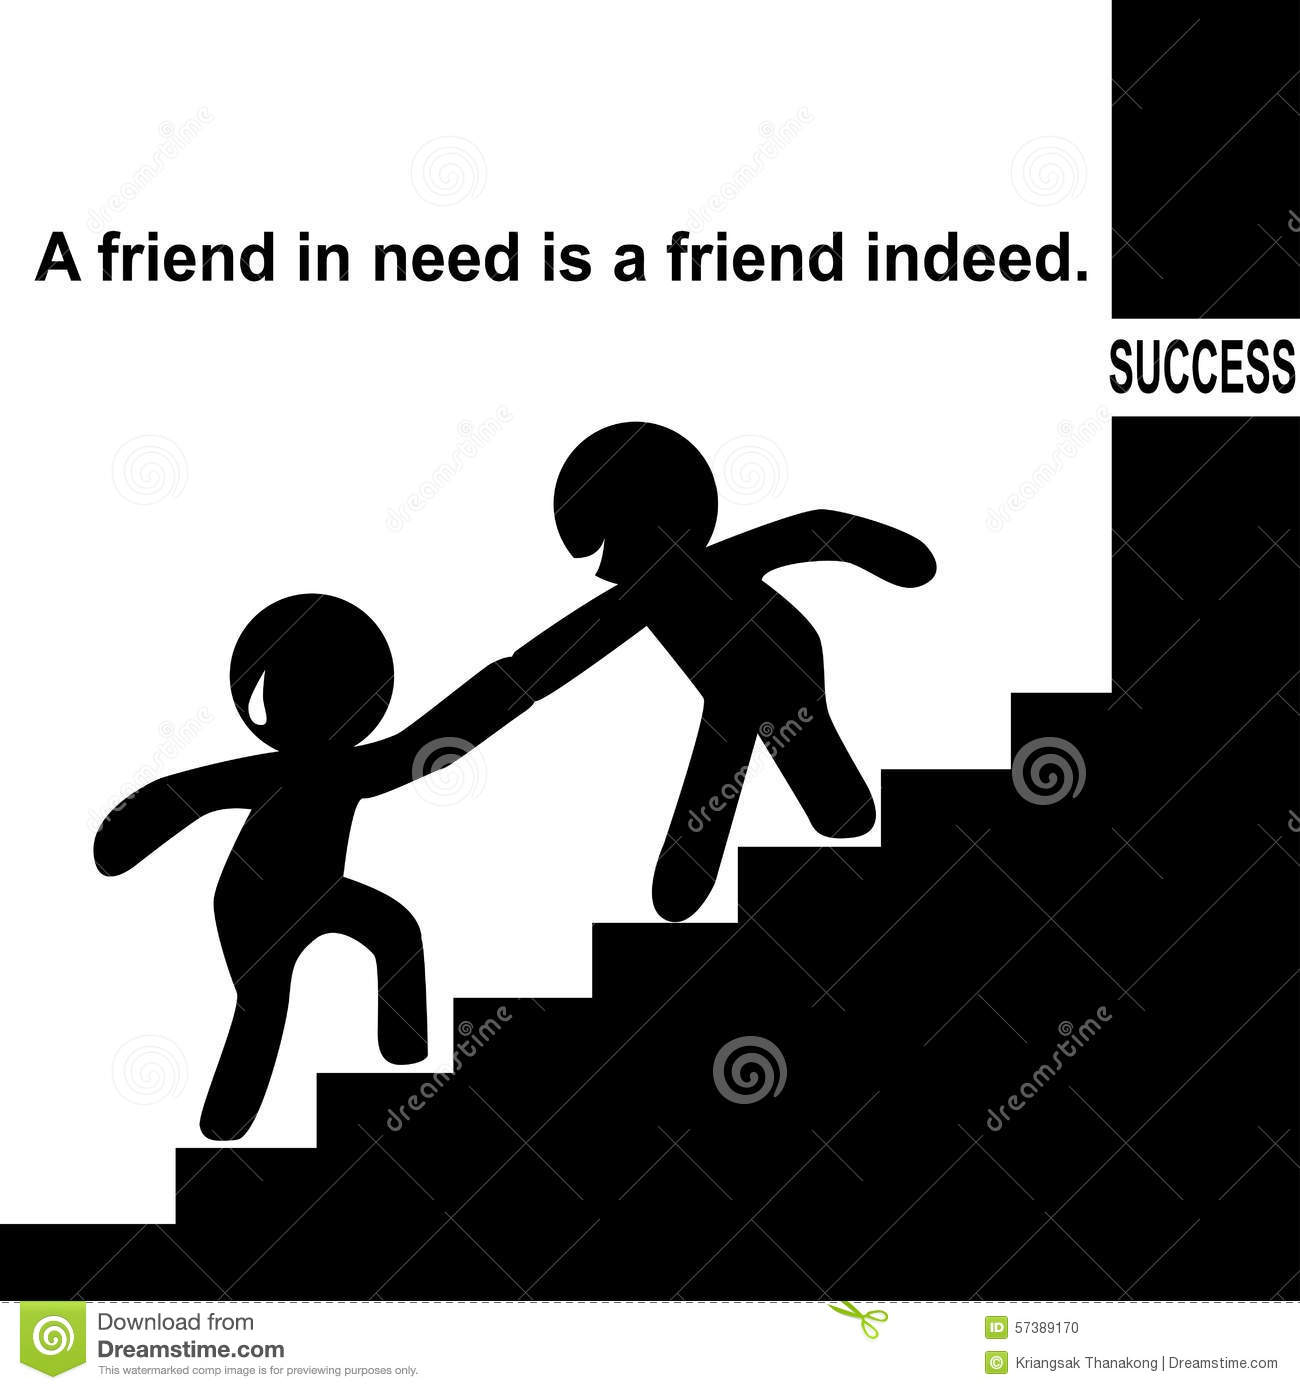 A friend in need is a friend indeed clipart.